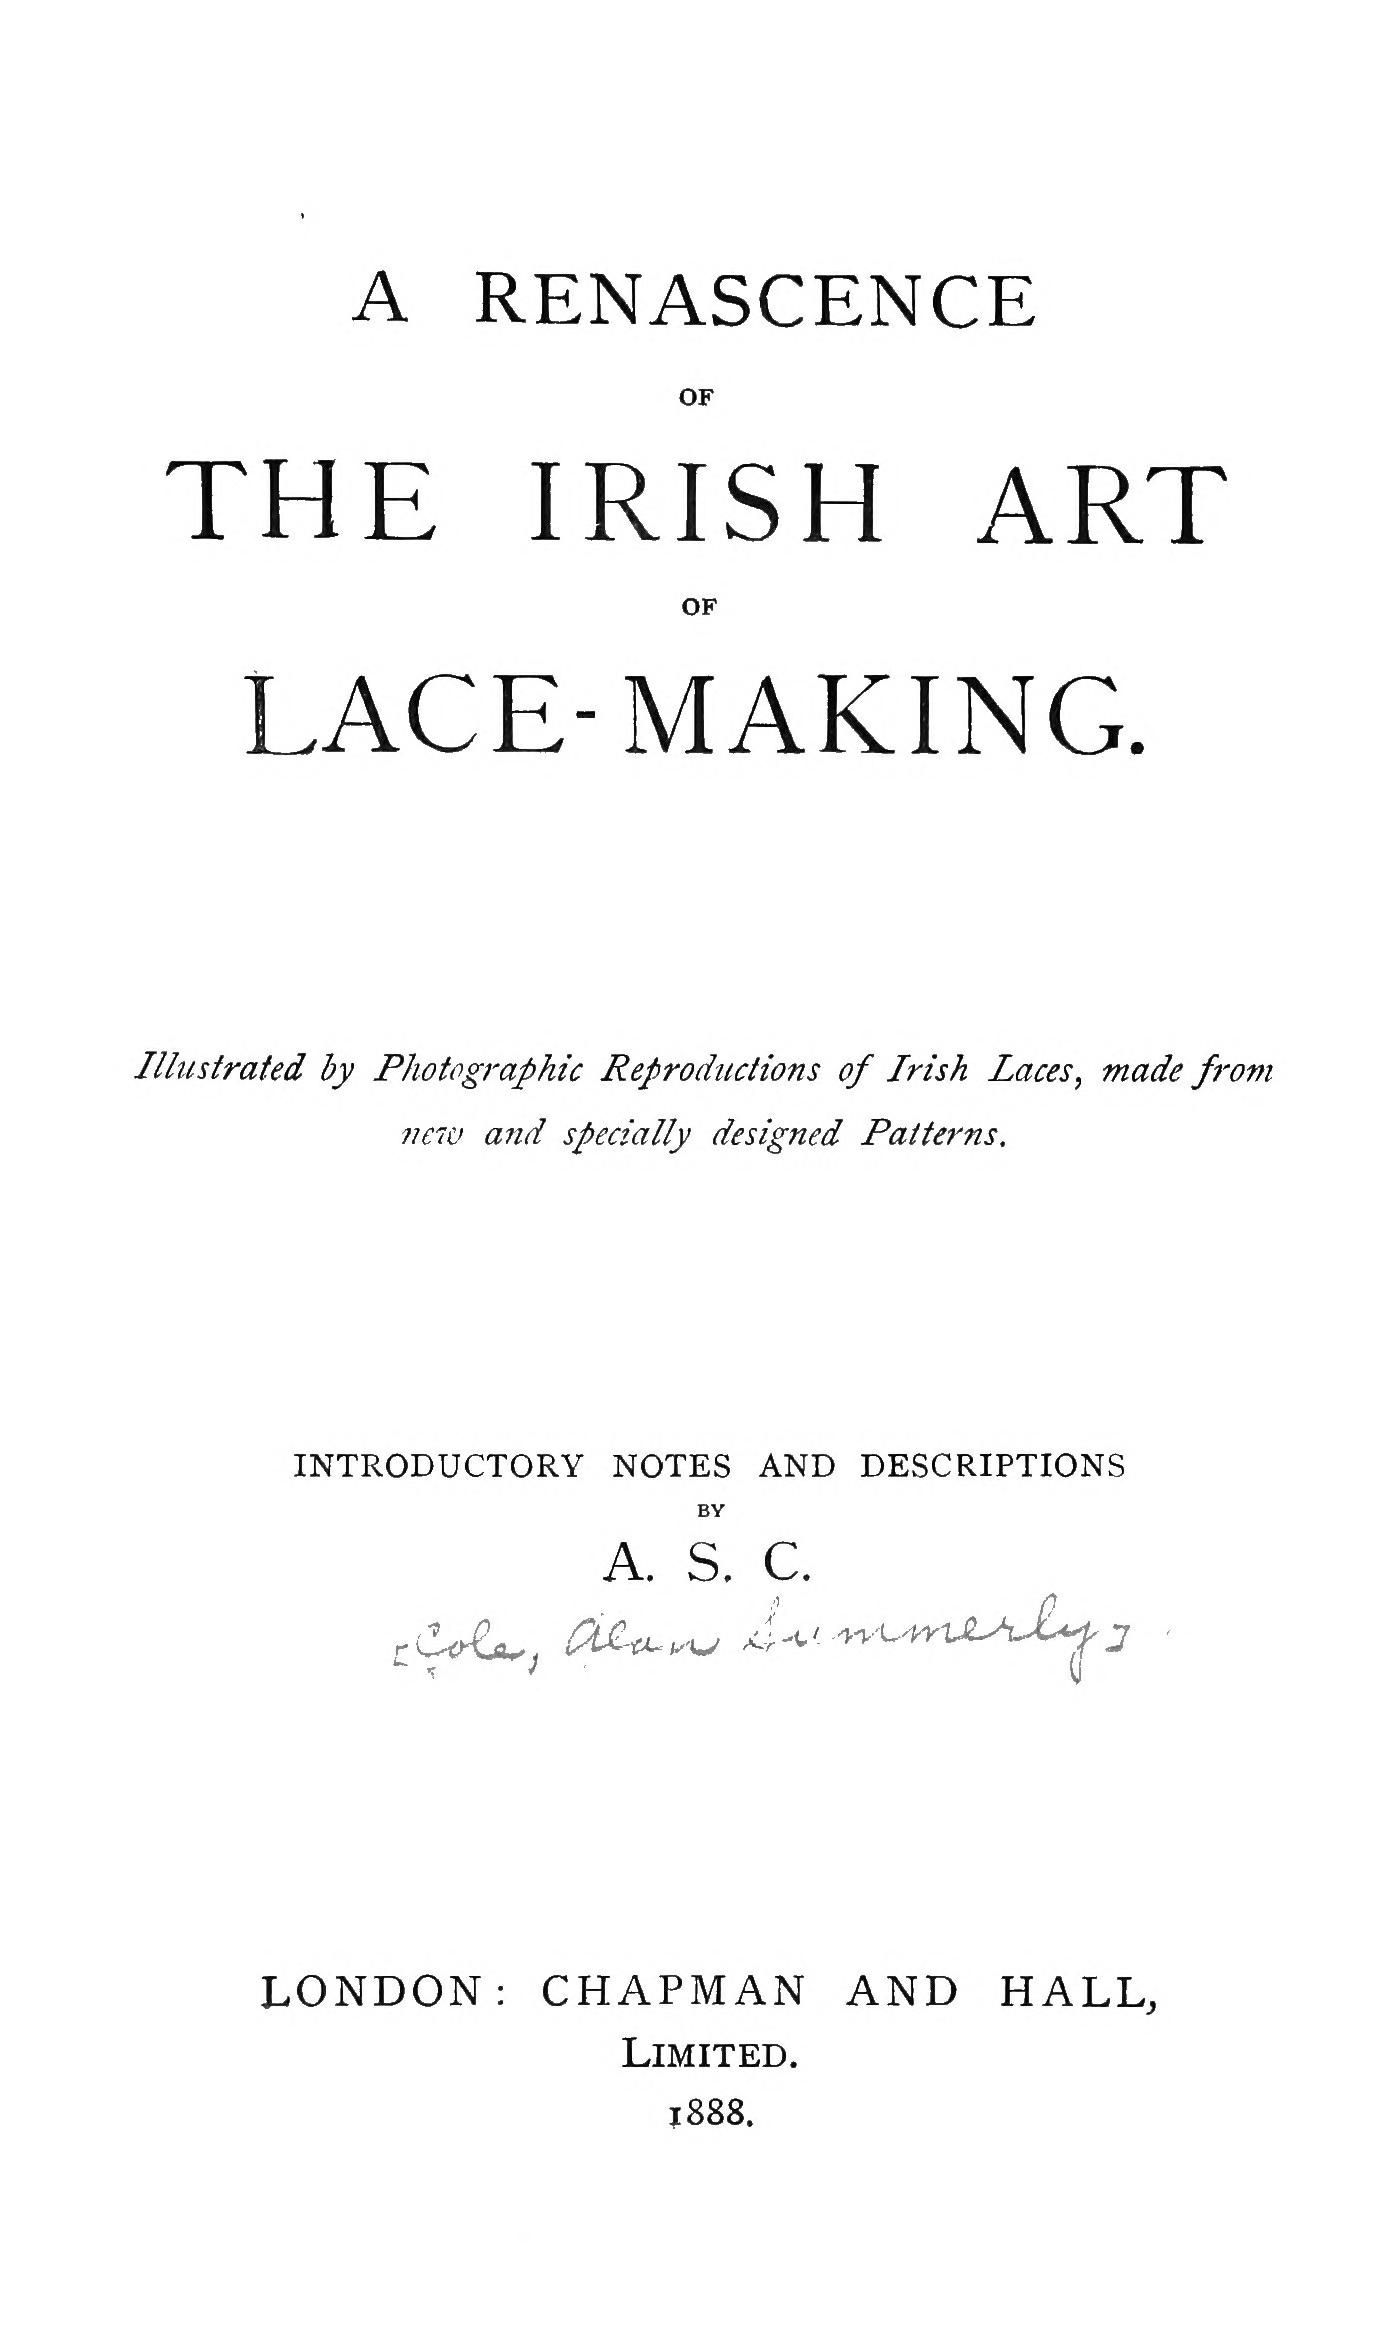 A renascence of the Irish art of lace-making. Illustrated by photographic reproductions of Irish laces, made from new and specially designed patterns